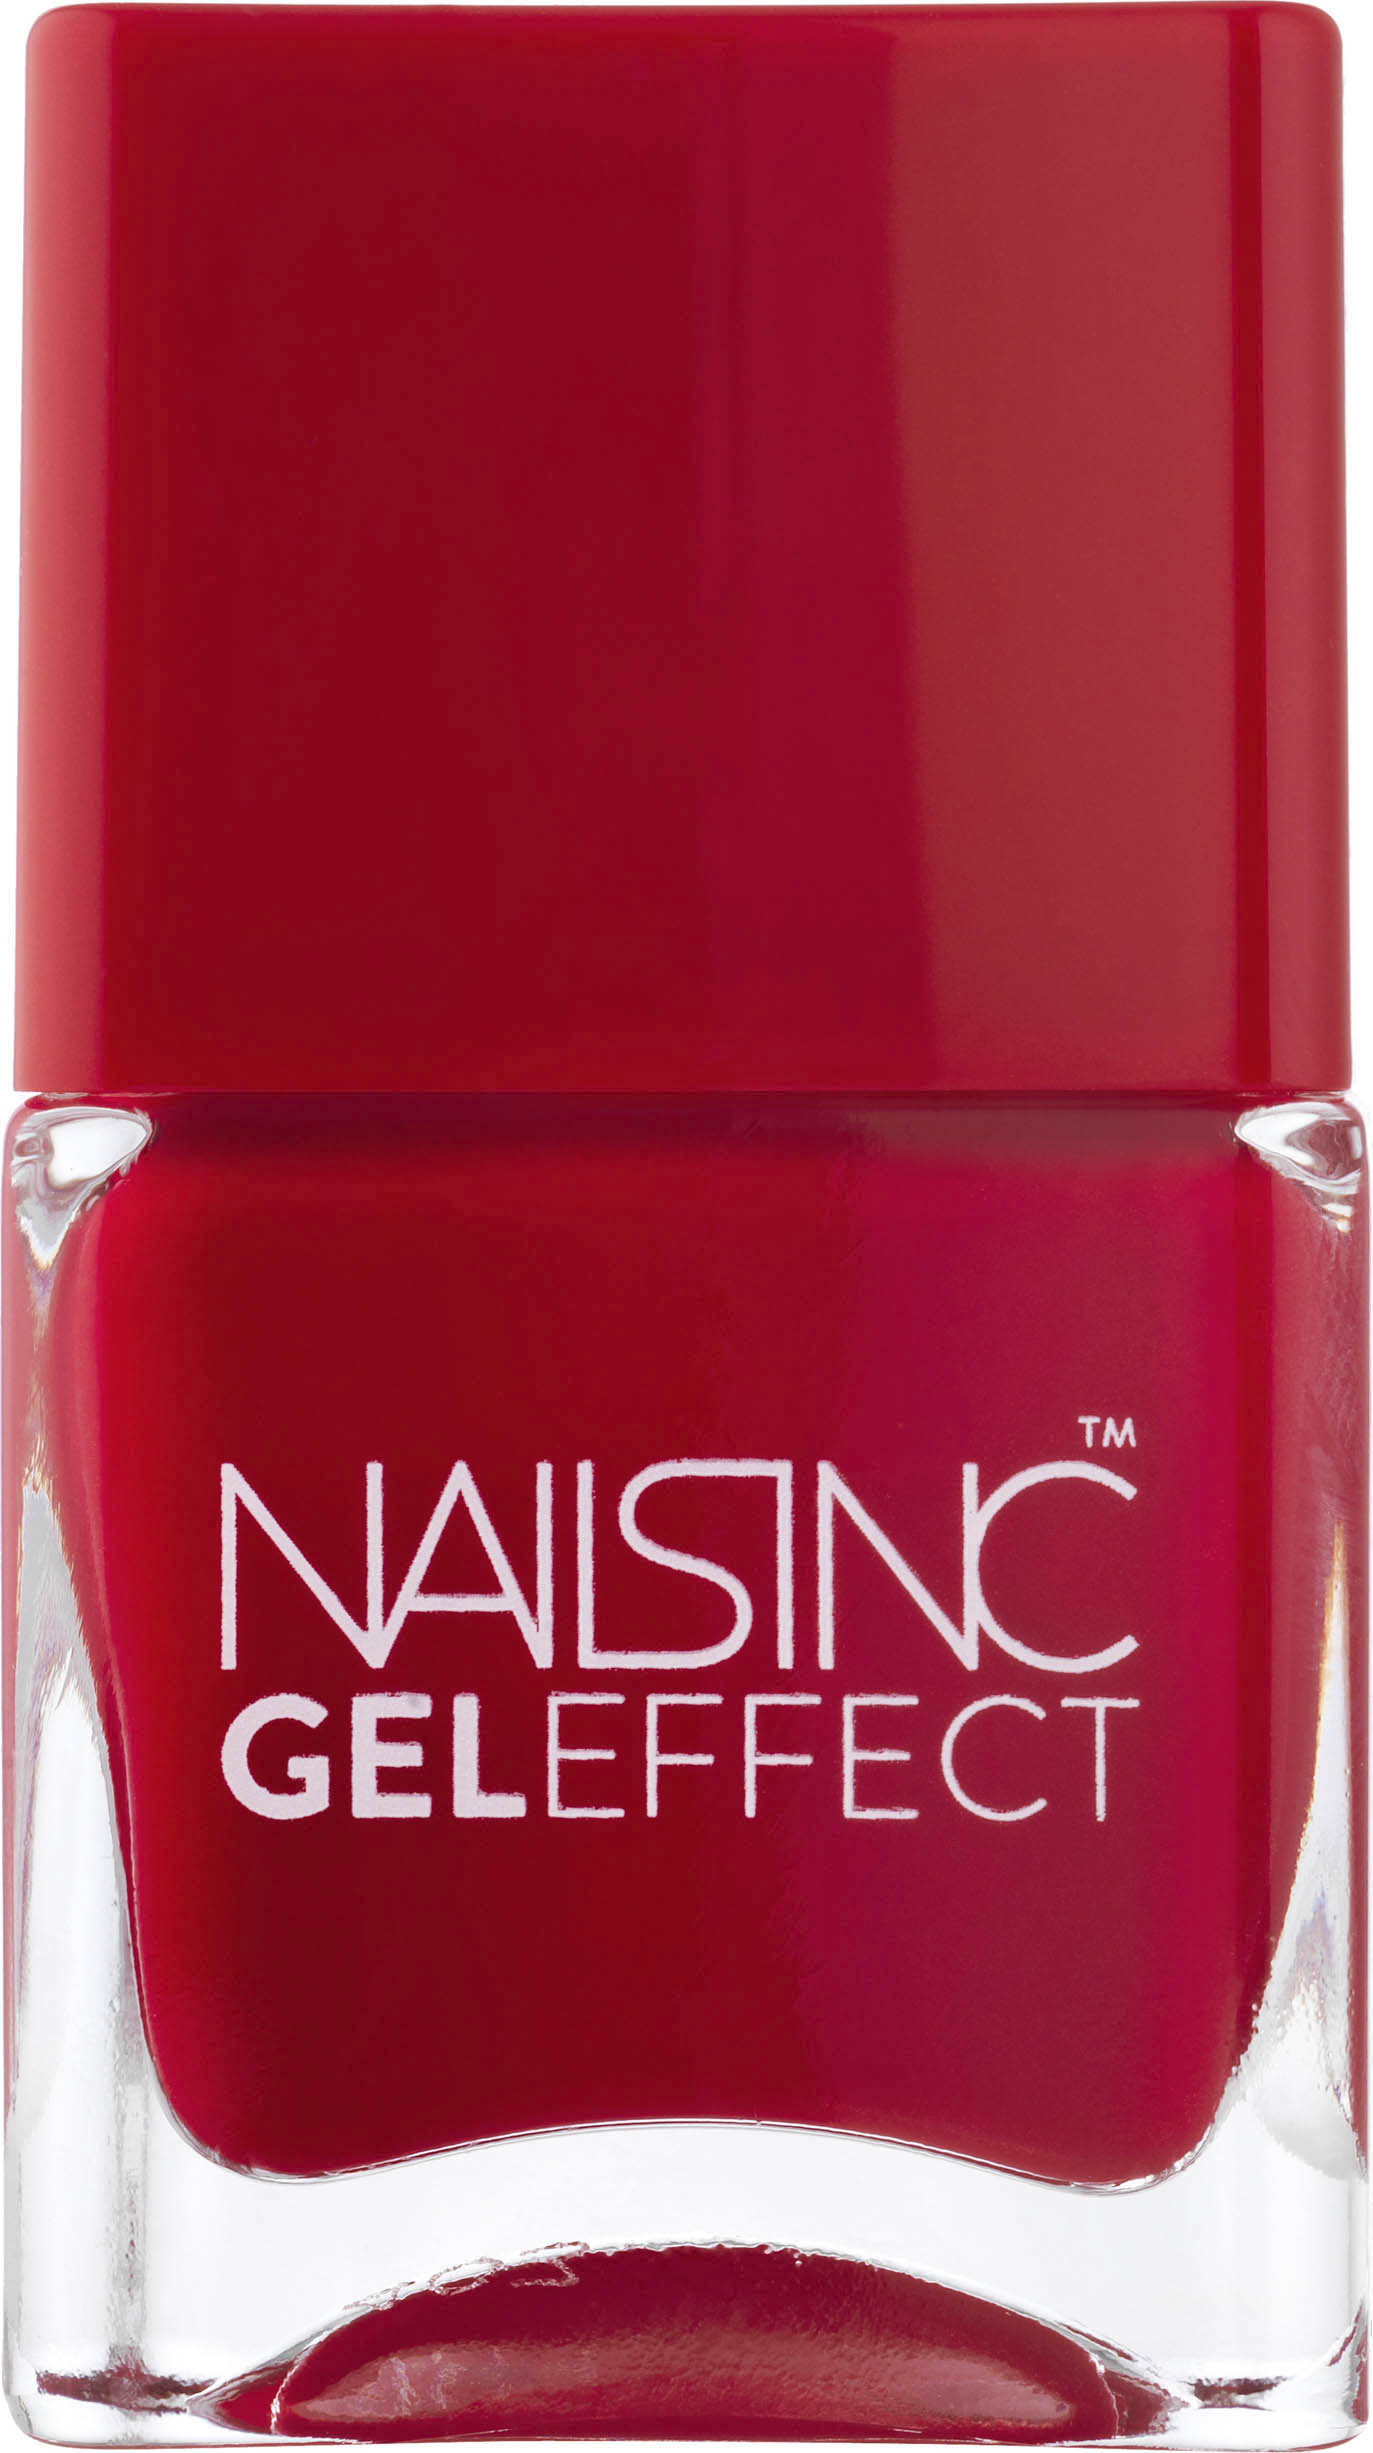 Nails Inc - Gel Effect Nail Lacquer 14 ml - St. James